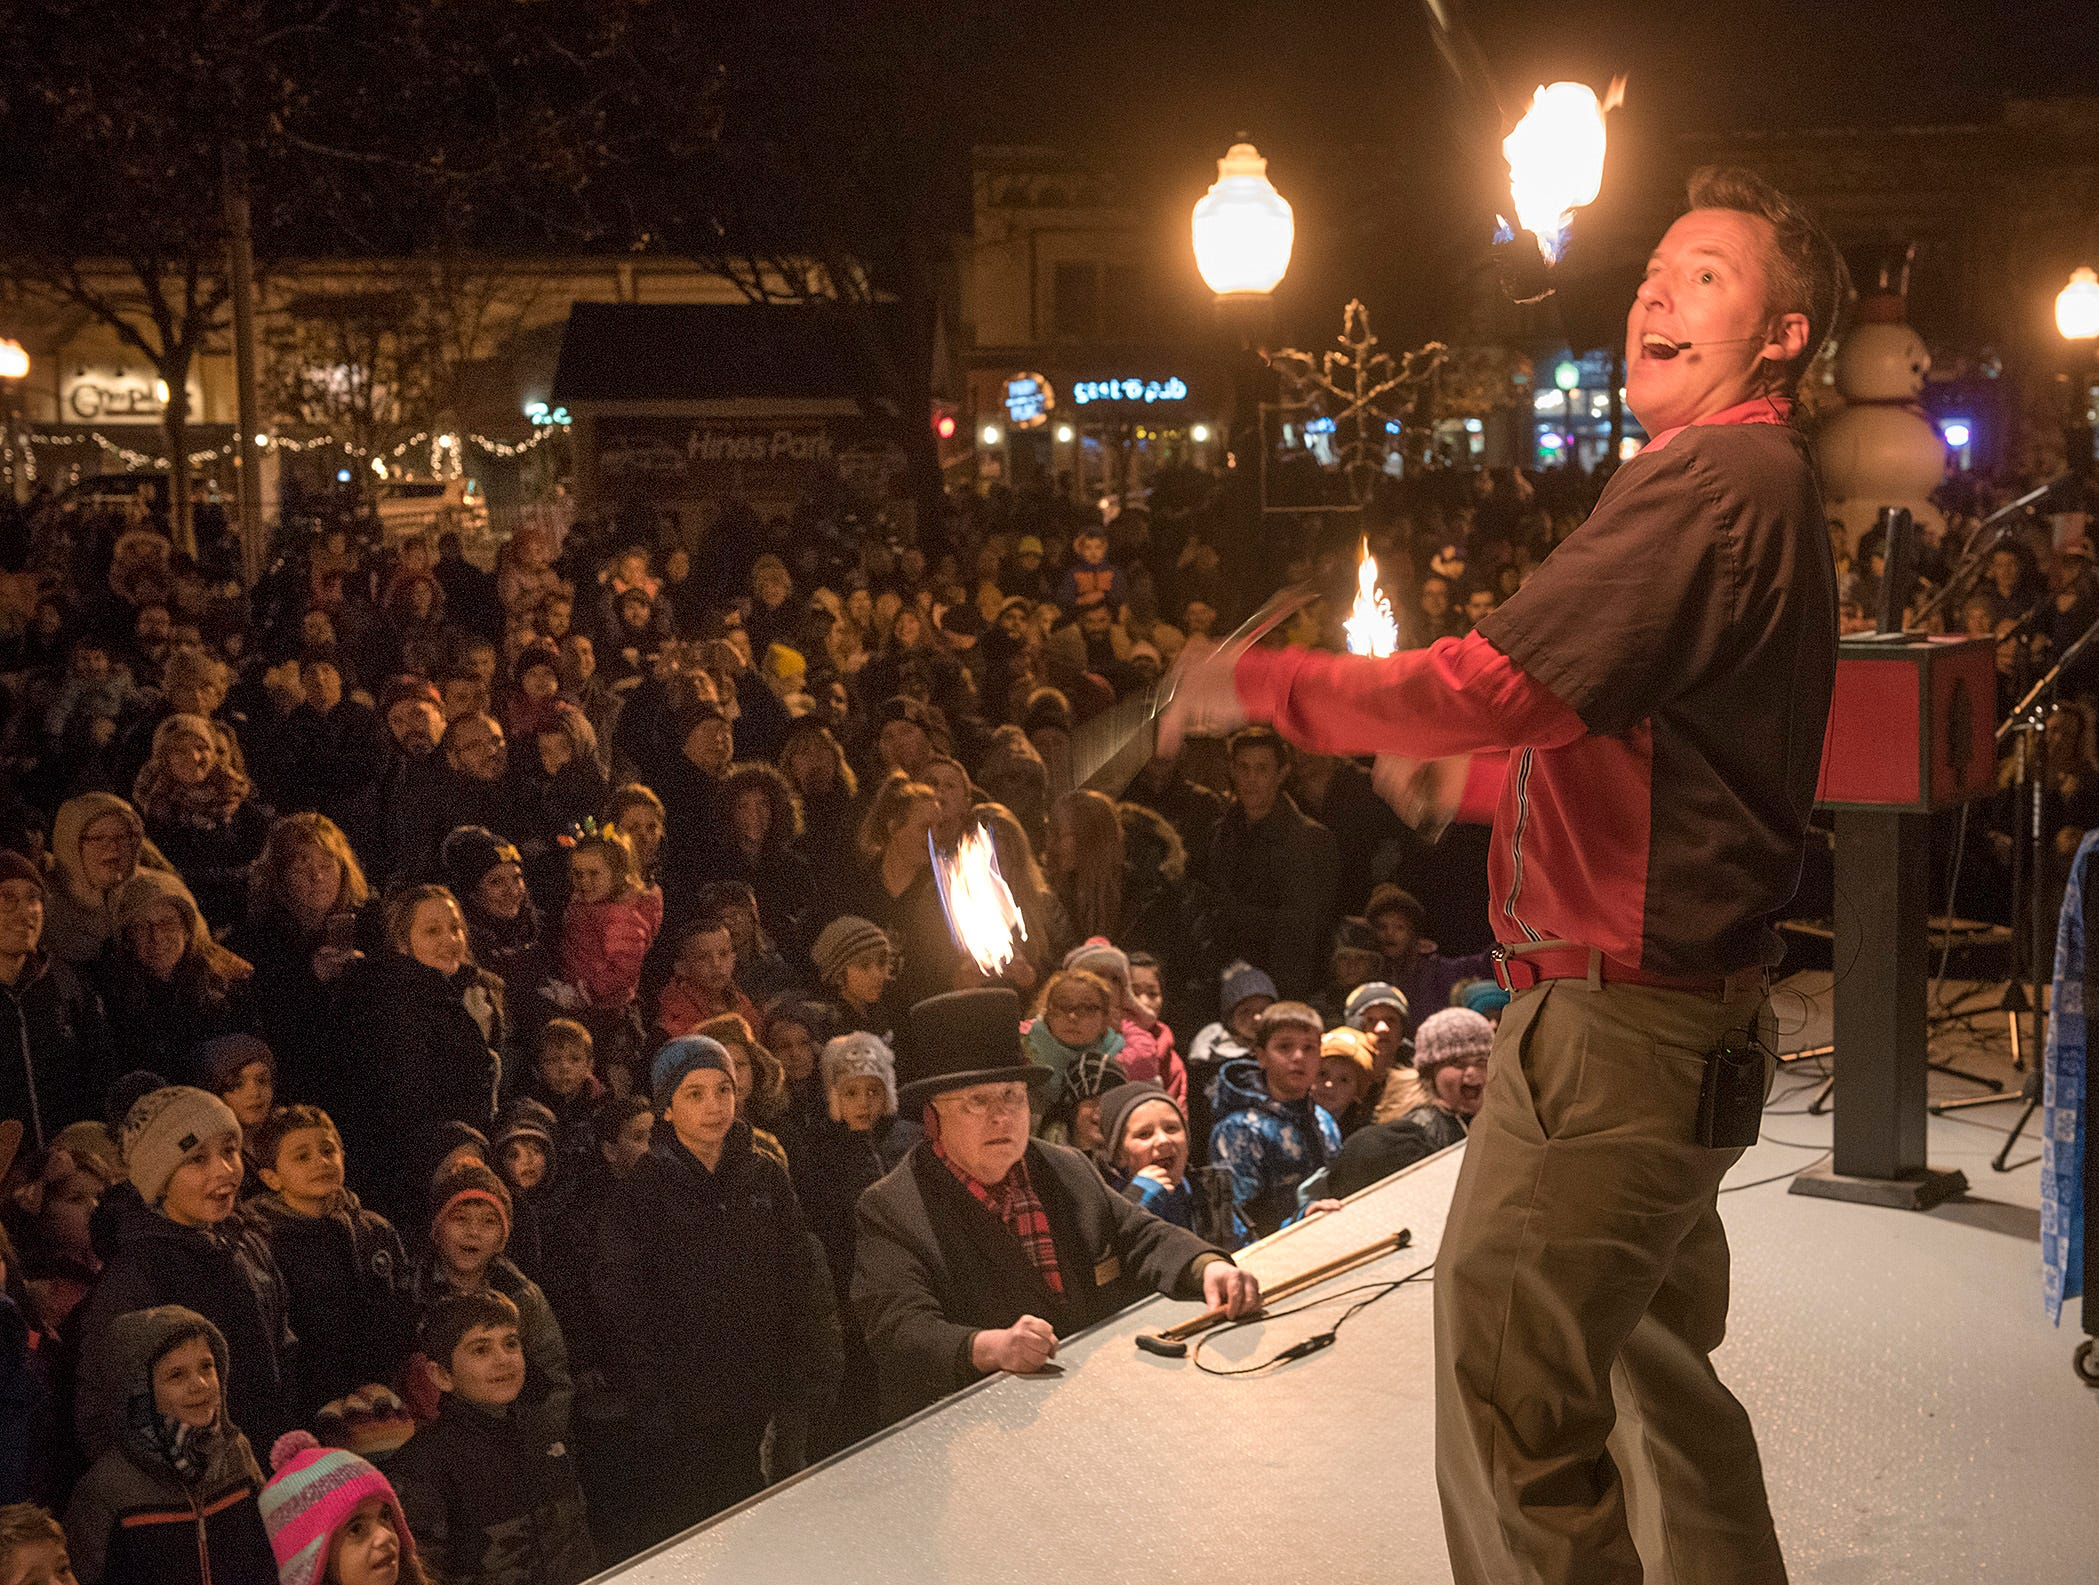 Magician Joel Tacey juggles fire batons, something that Santa Claus hardly ever does.